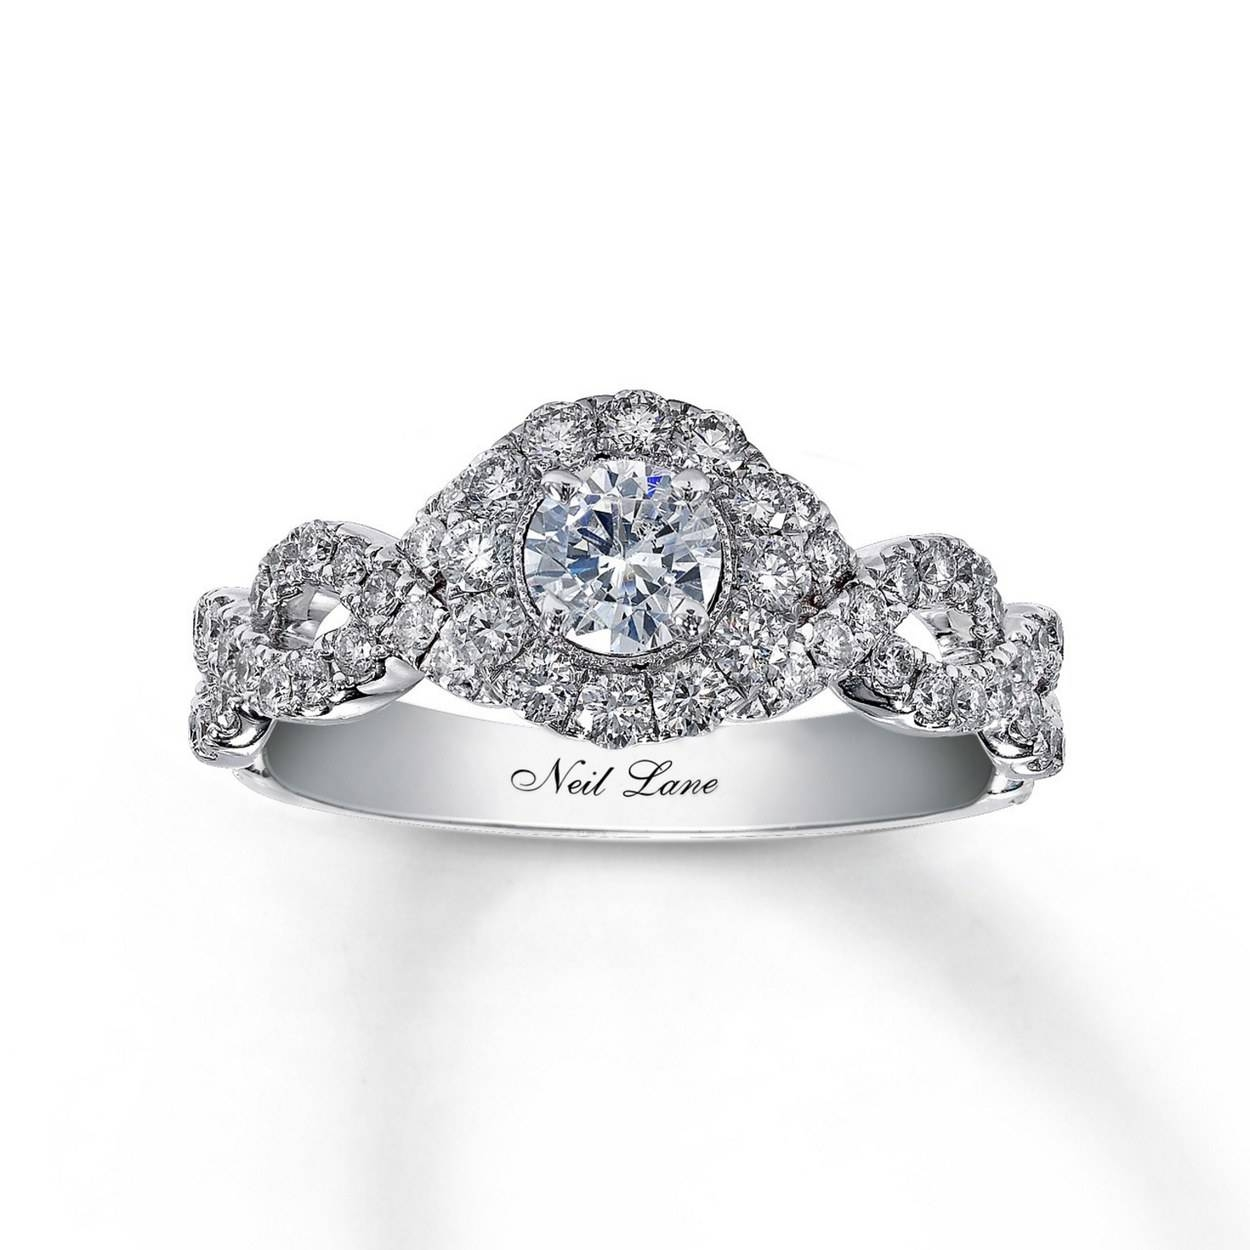 62 Diamond Engagement Rings Under $5,000 | Glamour Regarding Engagement Band Rings (View 6 of 15)